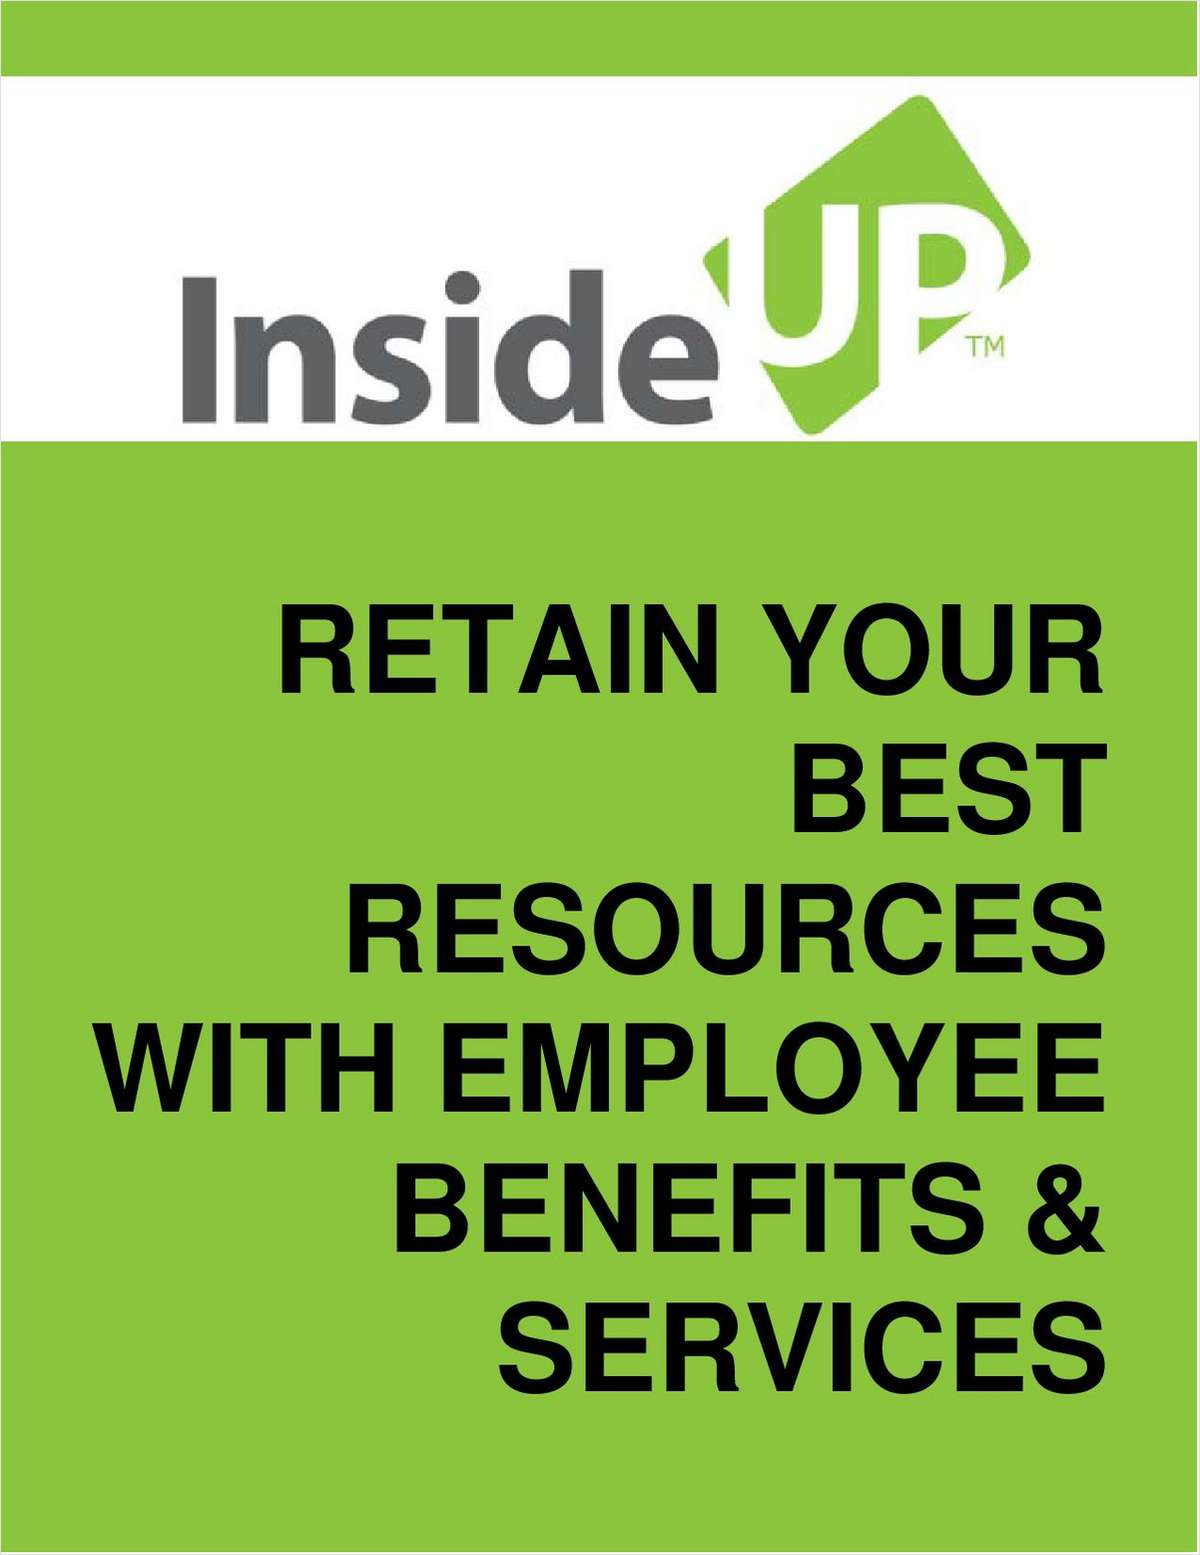 How to Run a More Cost-Efficient Employee Benefits and Services Program